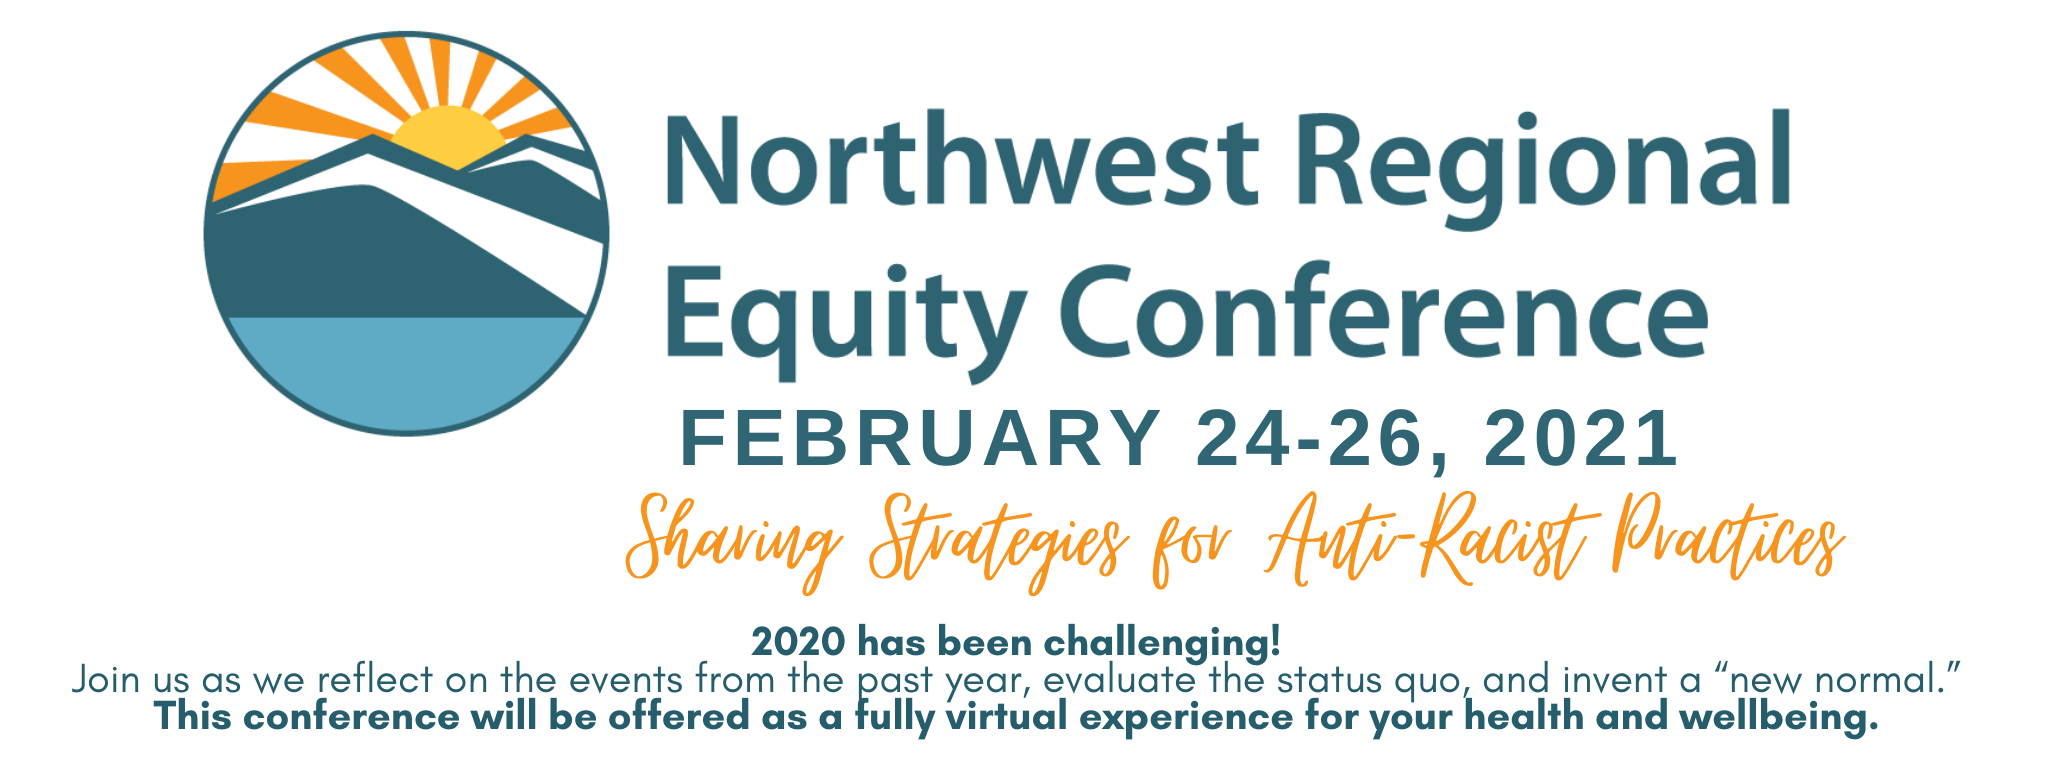 Northwest regional equity conference banner